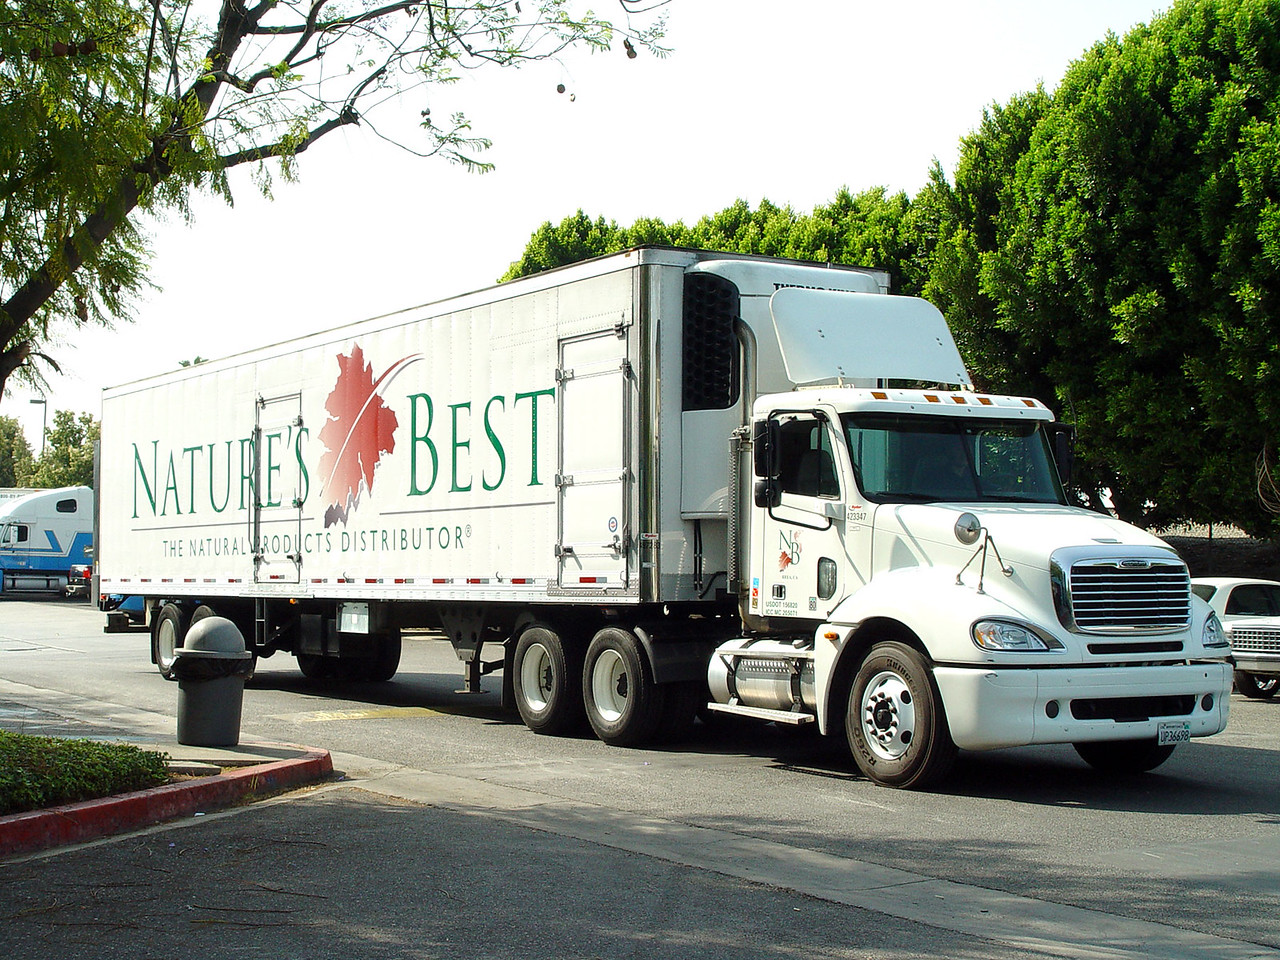 The Best Natural Foods Distributor in the World.